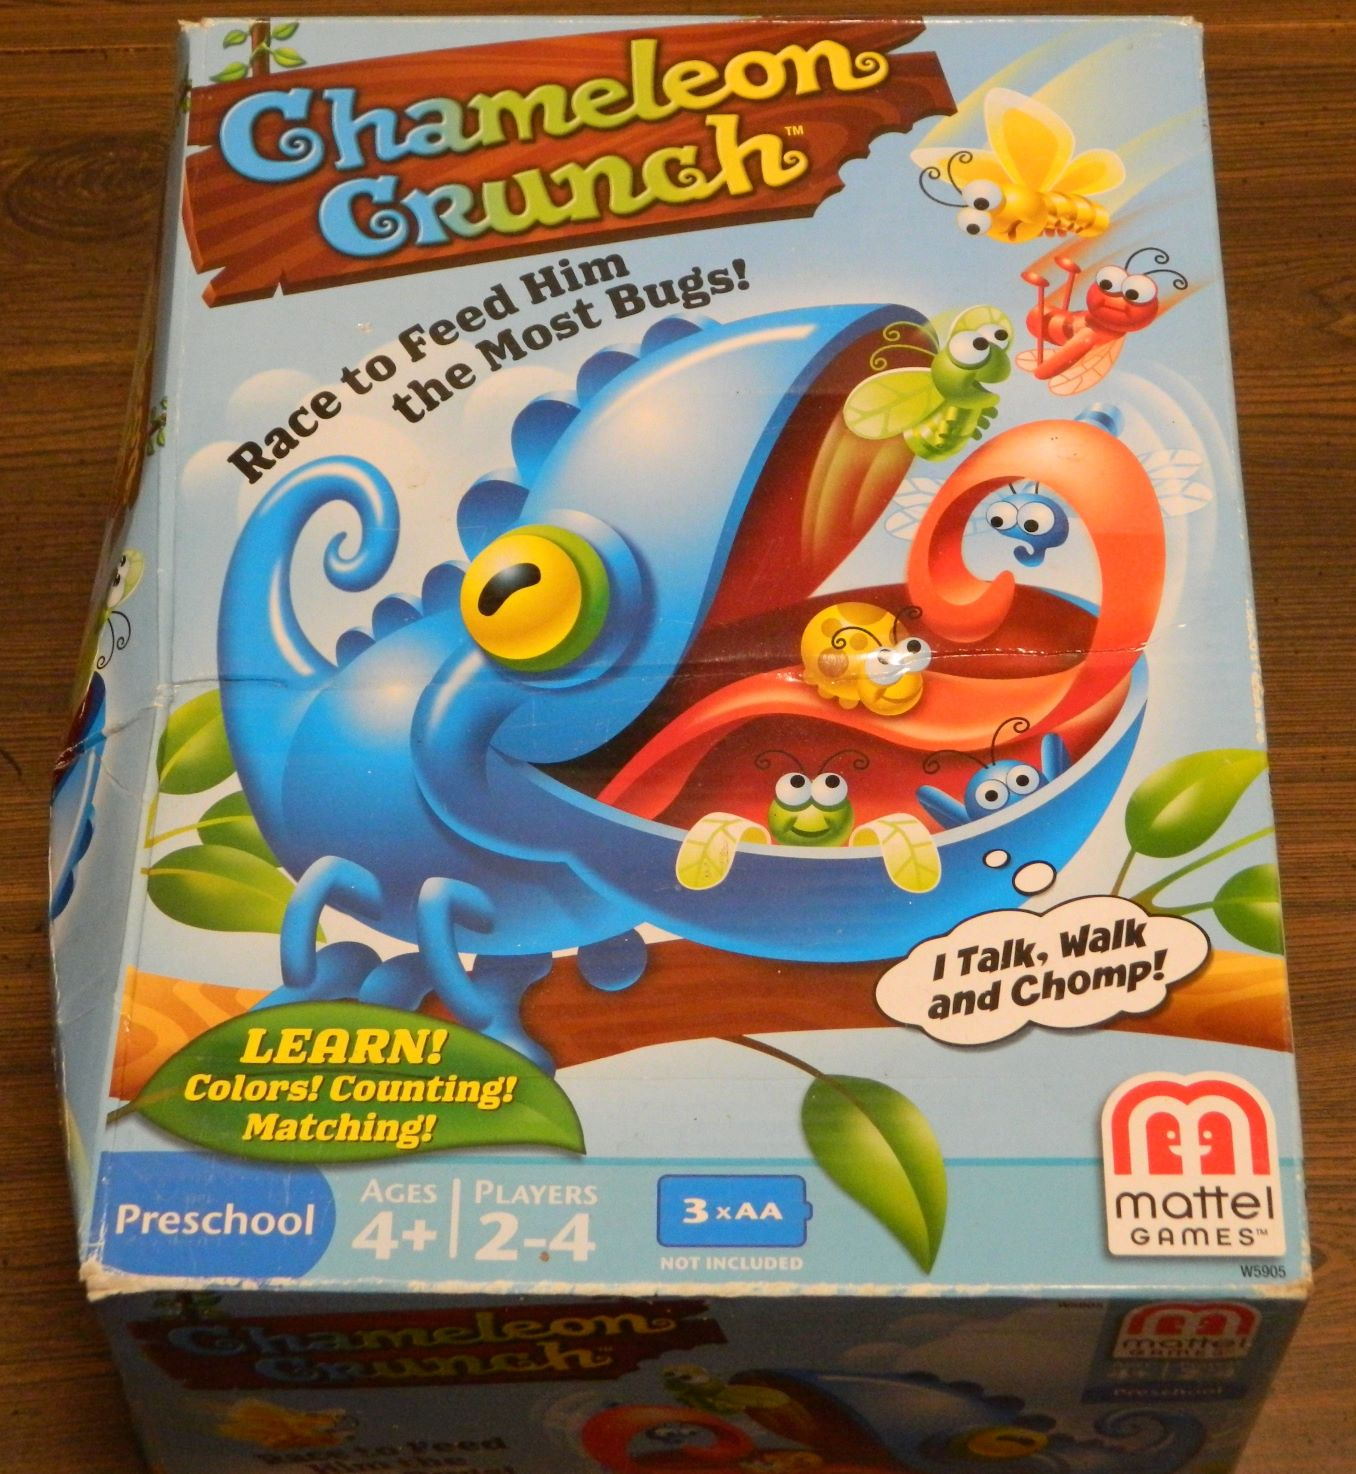 Box for Chameleon Crunch